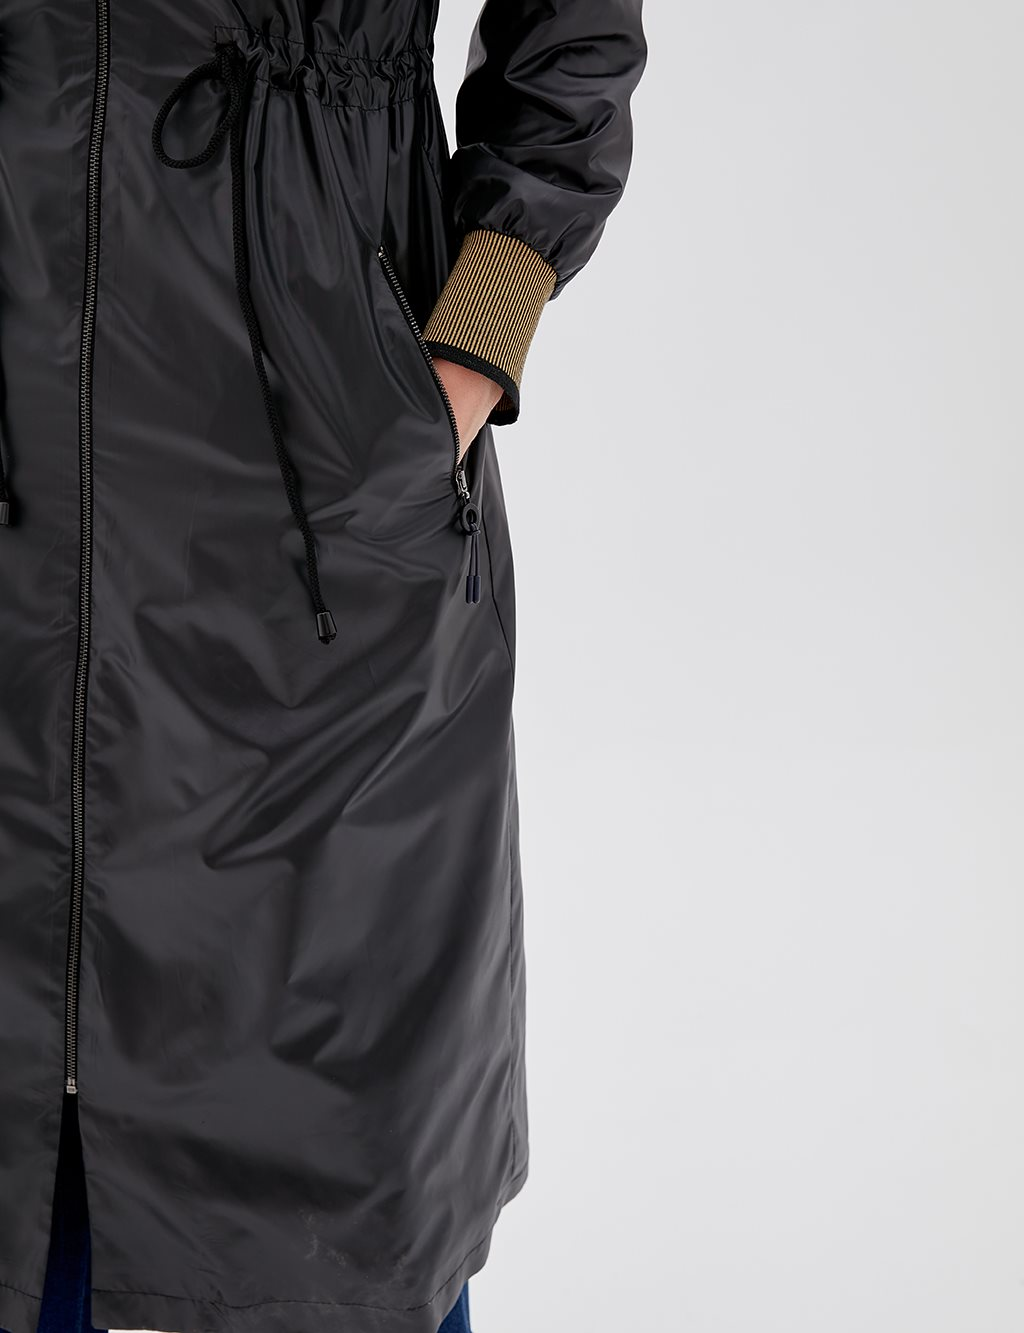 Ruched Coat With Zipper B20 14021 Black